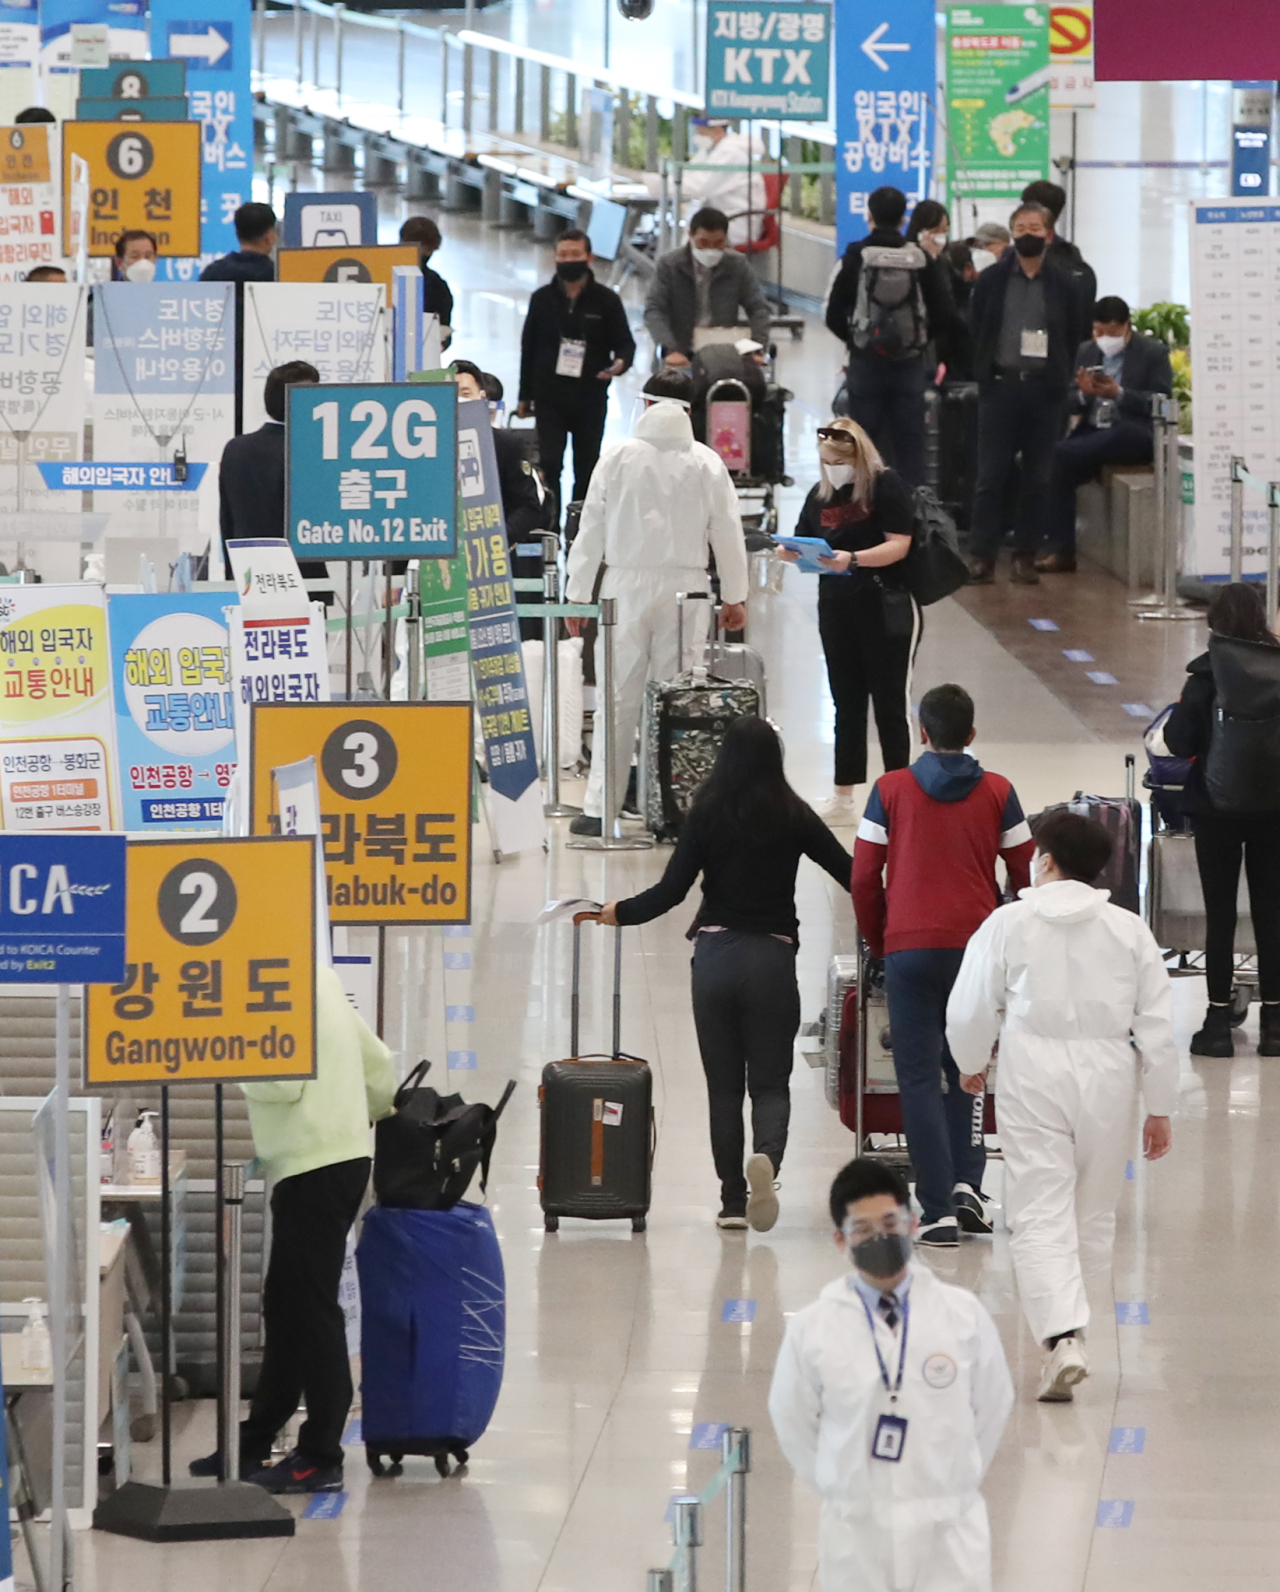 Arriving passengers are seen at Incheon airport, west of Seoul, amid the coronavirus pandemic in the file photo taken April 19, 2021. (Yonhap)